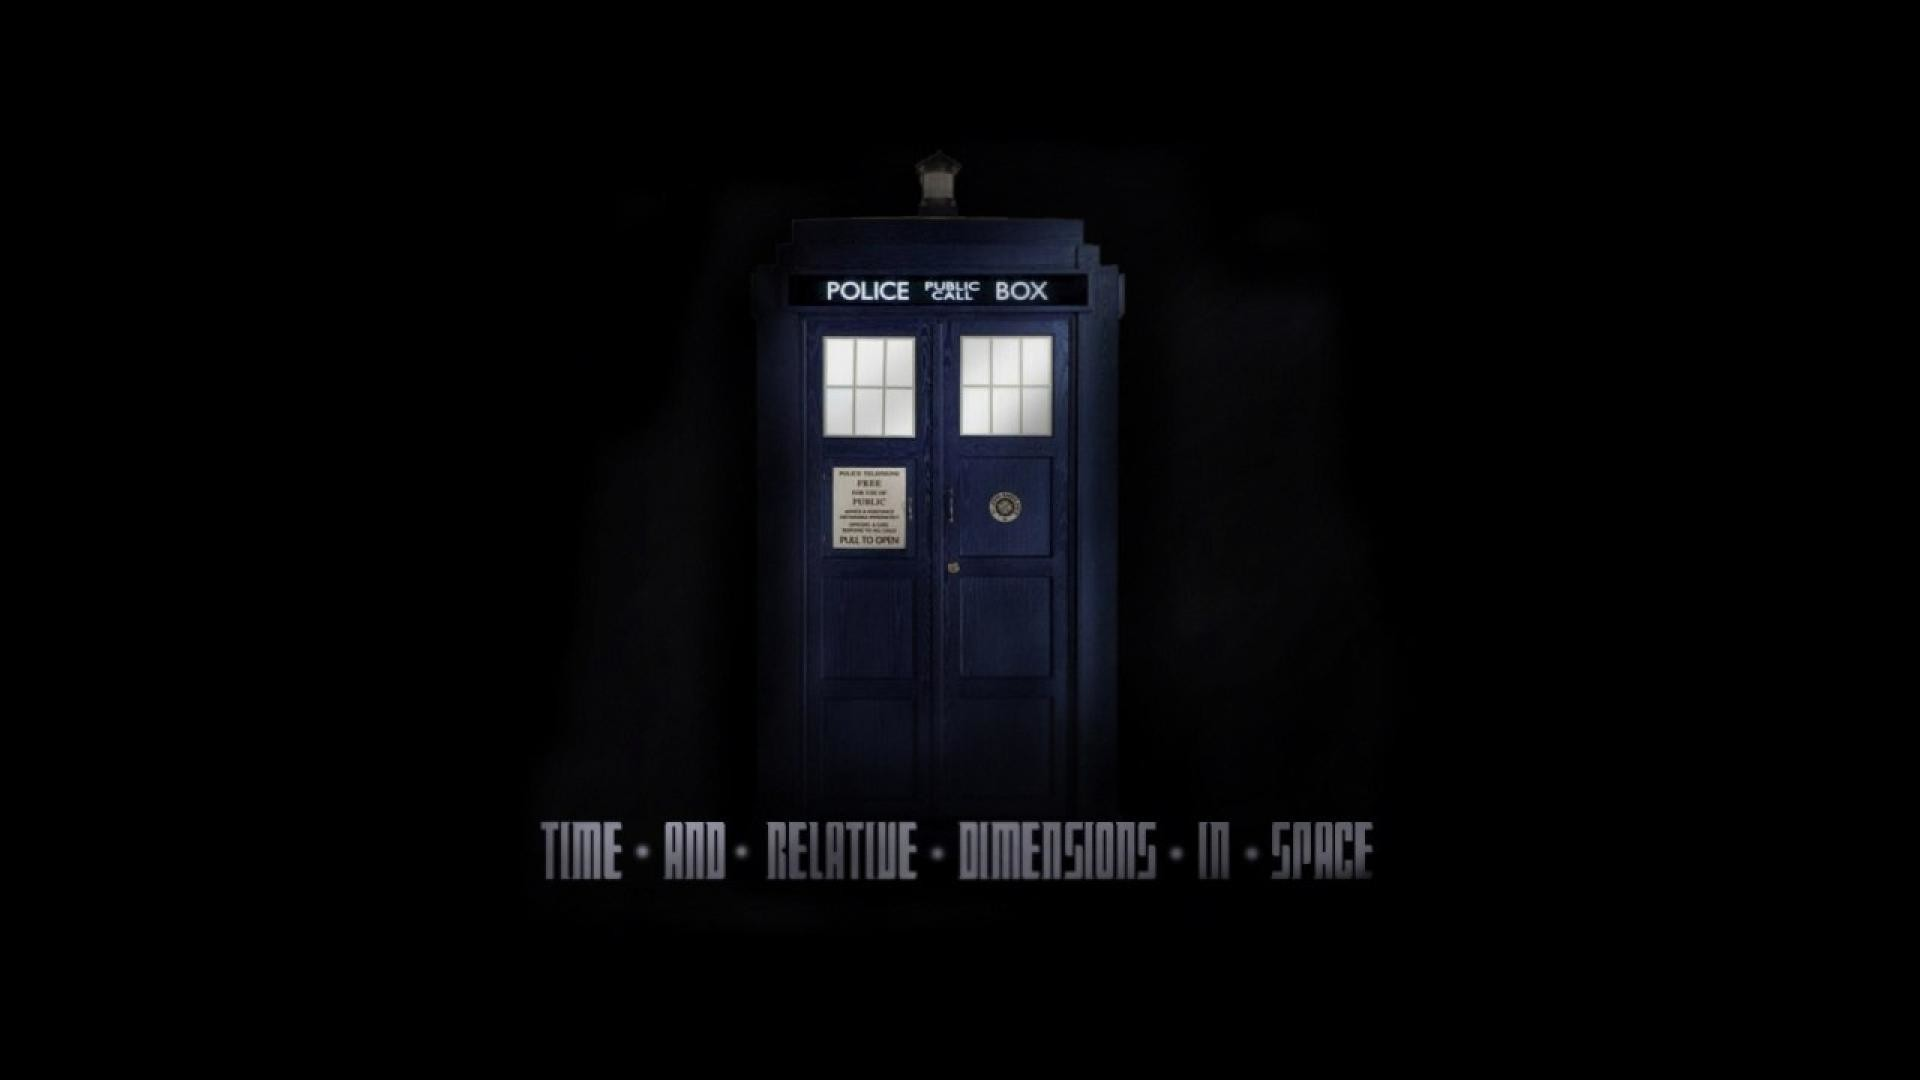 Doctor Who Wallpaper 1366x768 Wallpapertag